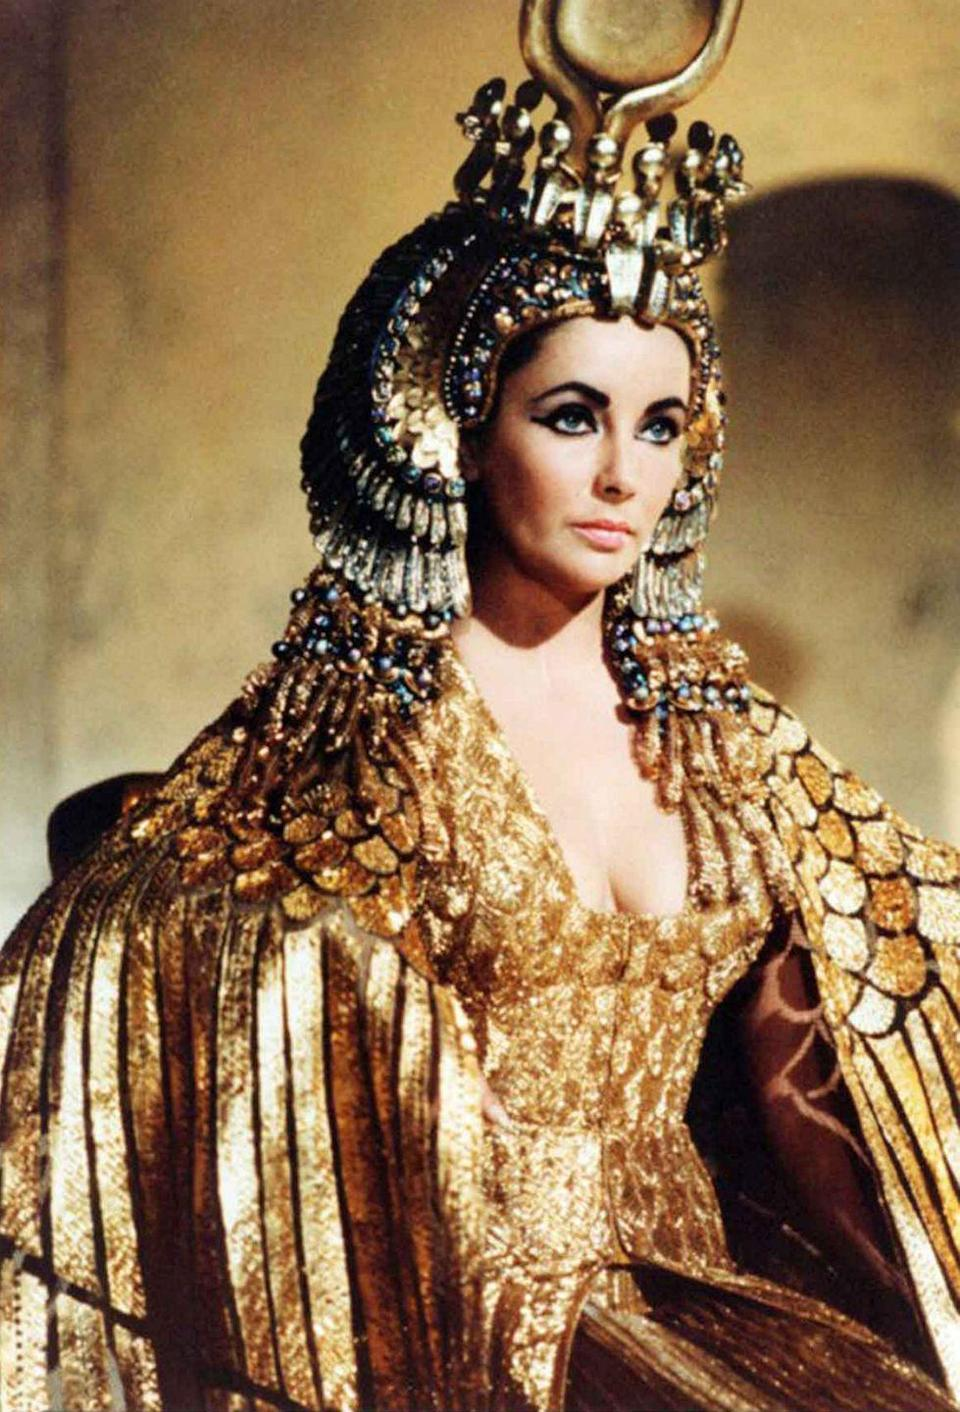 """<p>There are so many things to note about <em>Cleopatra</em>—from Elizabeth Taylor's budding romance with costar Richard Burton to the film's elaborate set and <a href=""""https://variety.com/2017/film/news/most-expensive-movie-pirates-of-the-caribbean-cleopatra-avatar-hollywood-budgets-1202434333/"""" rel=""""nofollow noopener"""" target=""""_blank"""" data-ylk=""""slk:overextended budget"""" class=""""link rapid-noclick-resp"""">overextended budget</a>. But the one thing that is undeniable is the amazing wardrobe designed for Taylor, starting with the 24-karat gold headdress and cape she wore while arriving in Rome. </p>"""